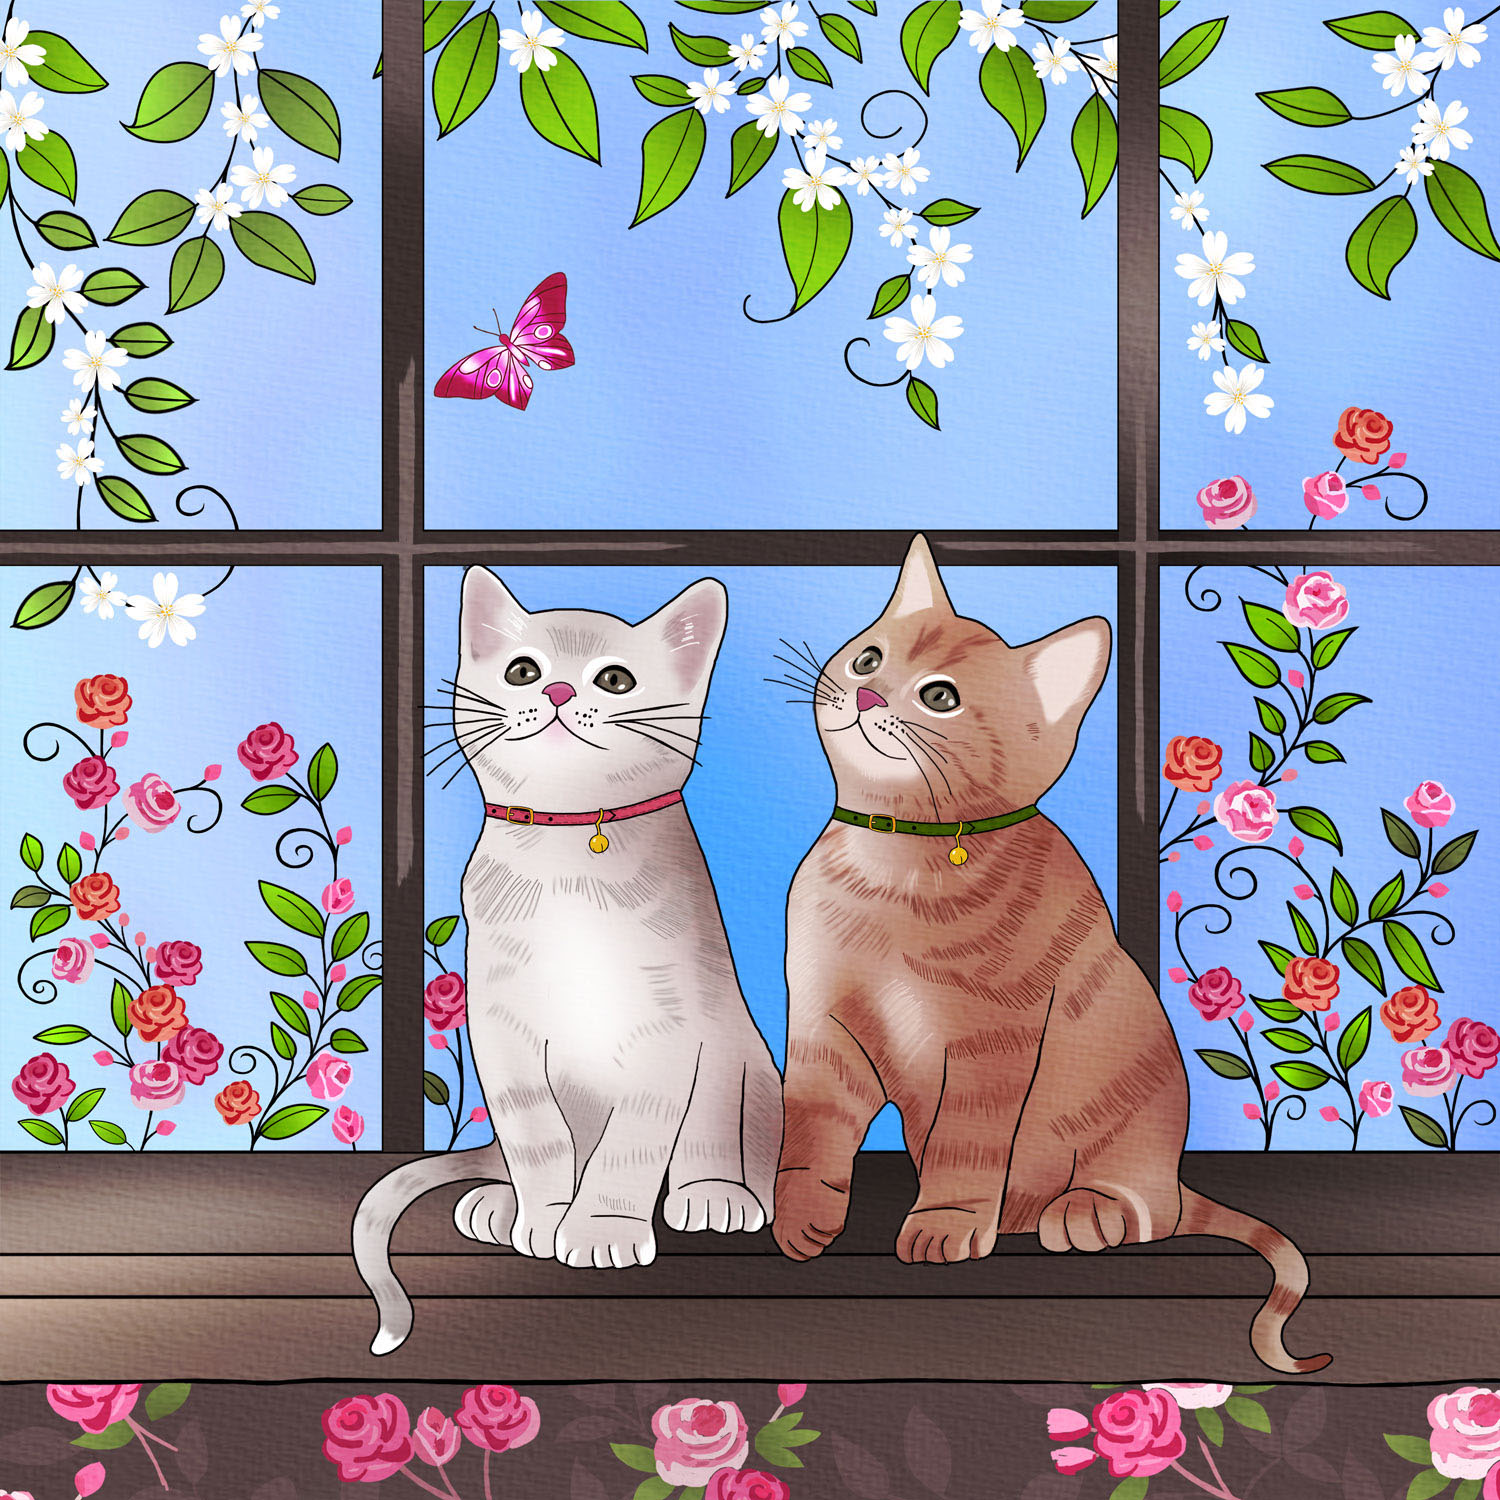 KITTENS AT PLAY - Design Ref. 2647